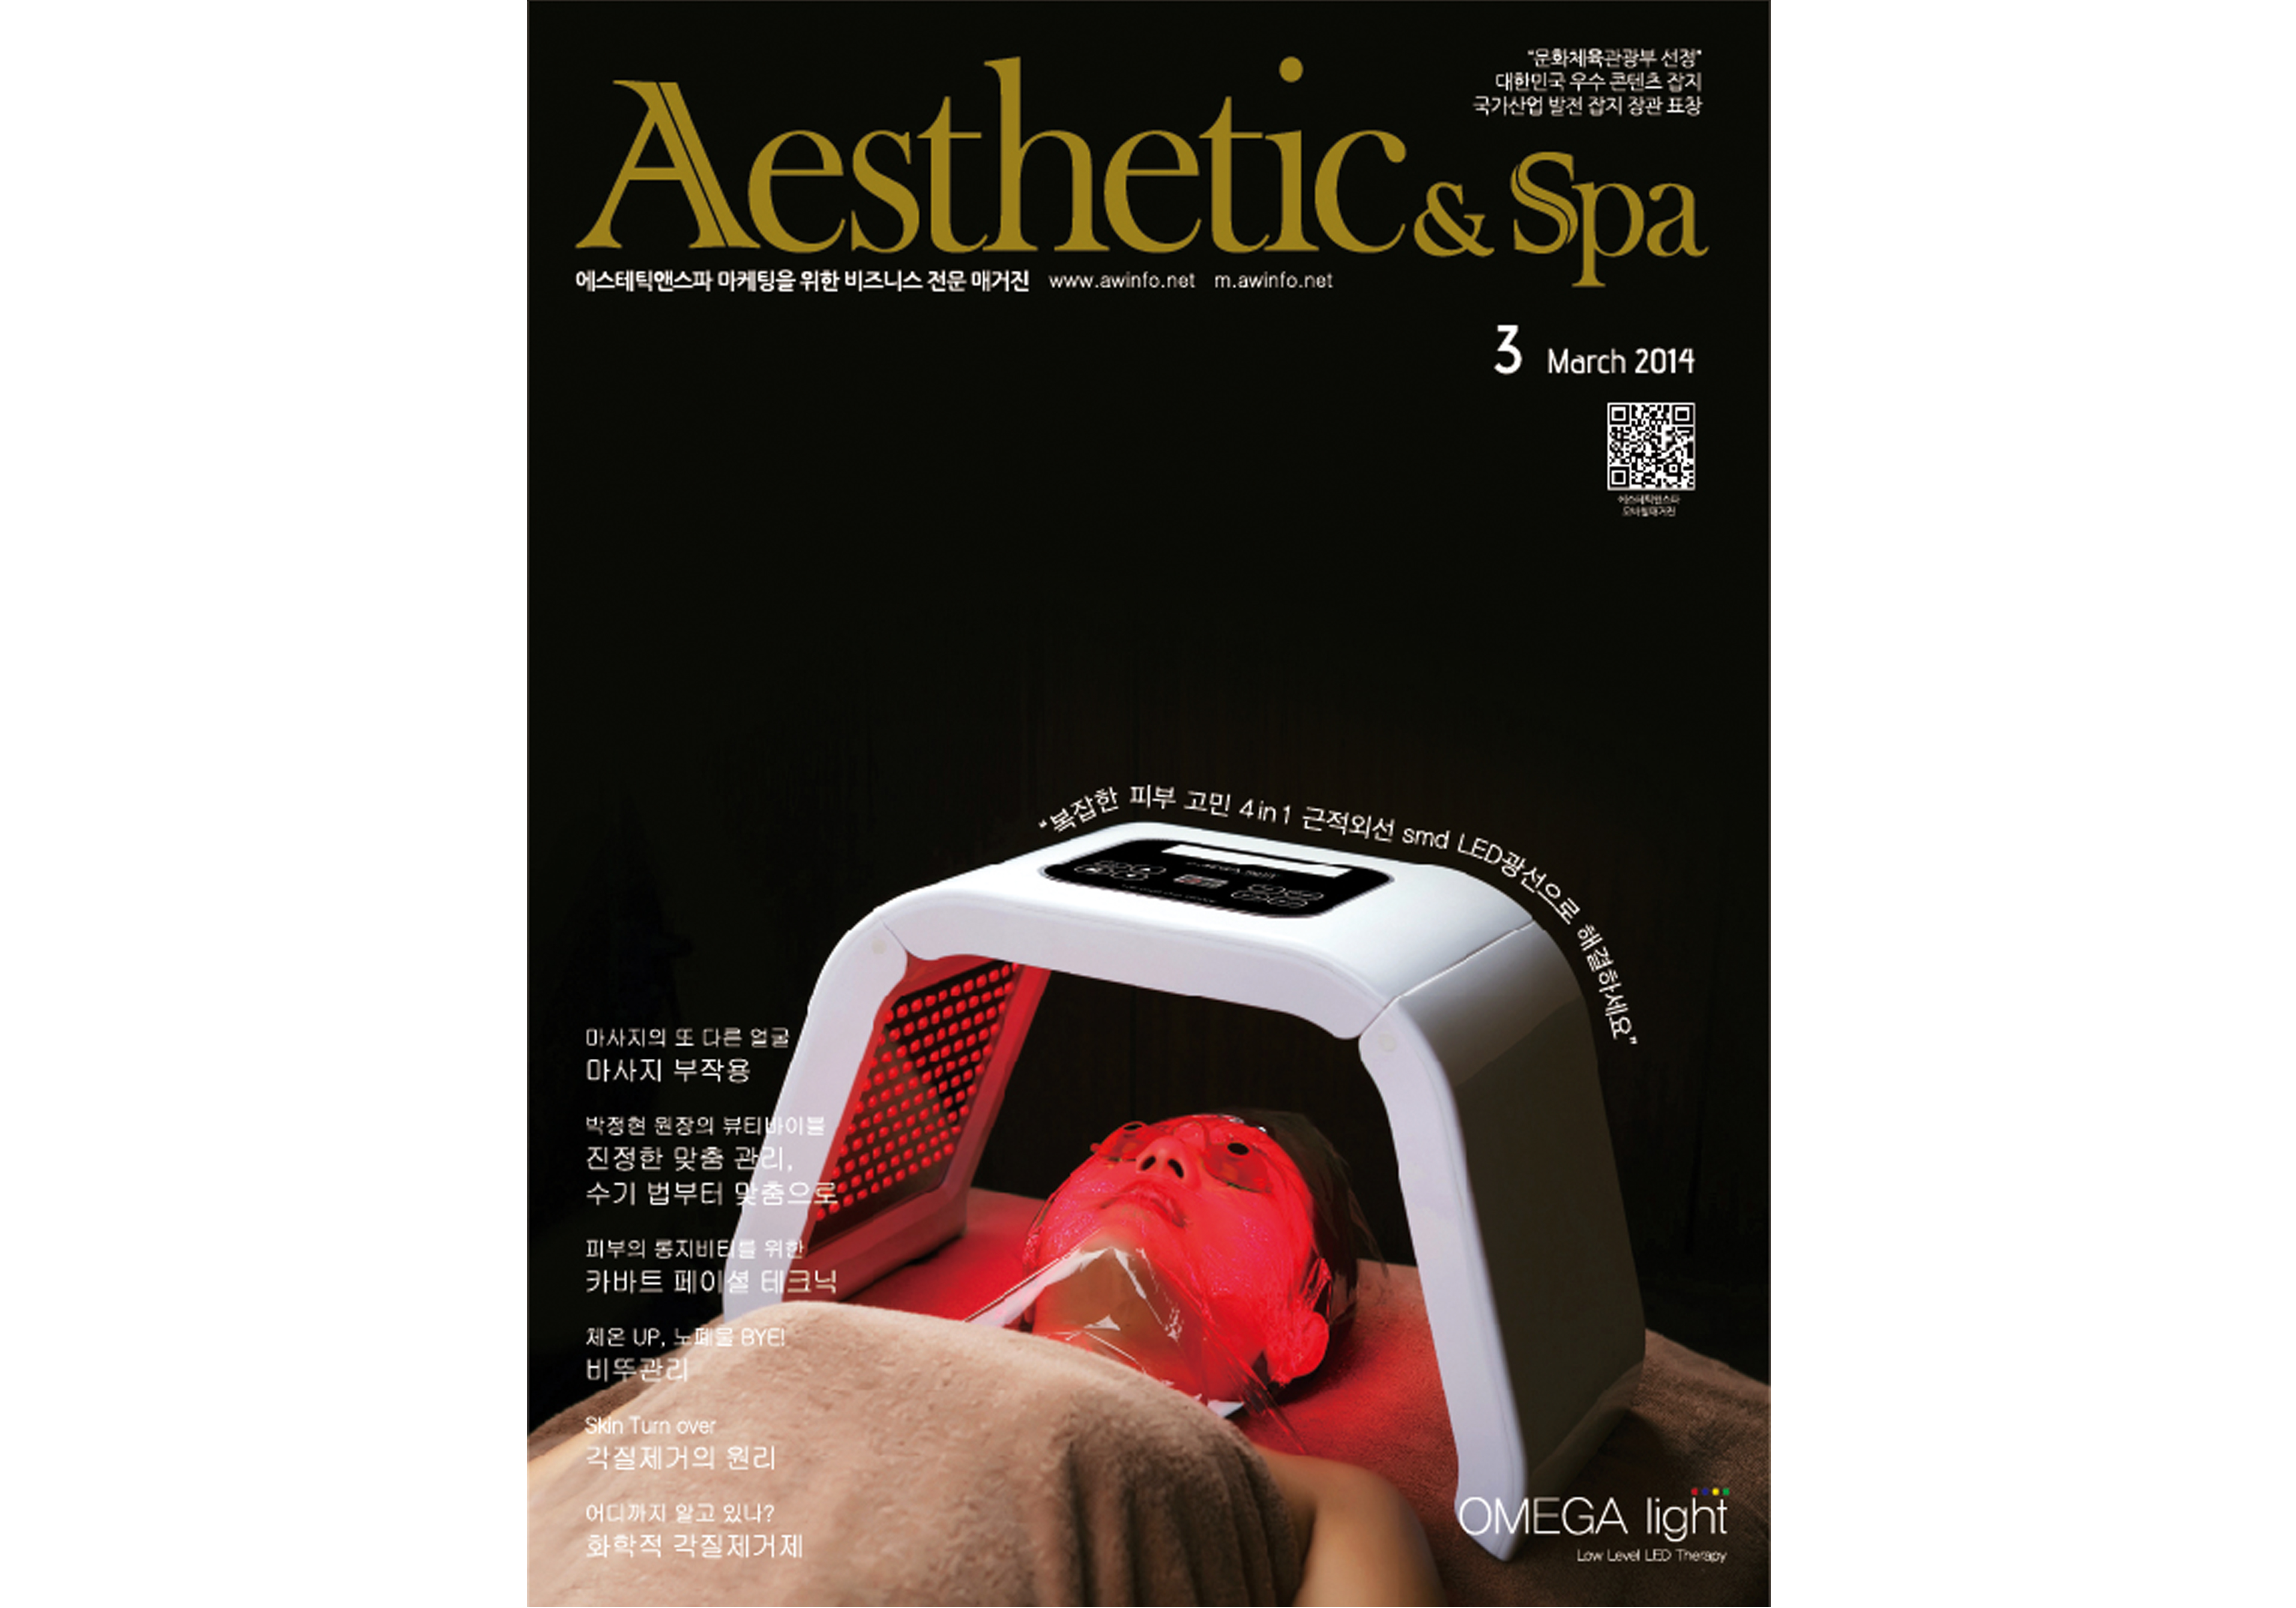 Aesthetic&Spa